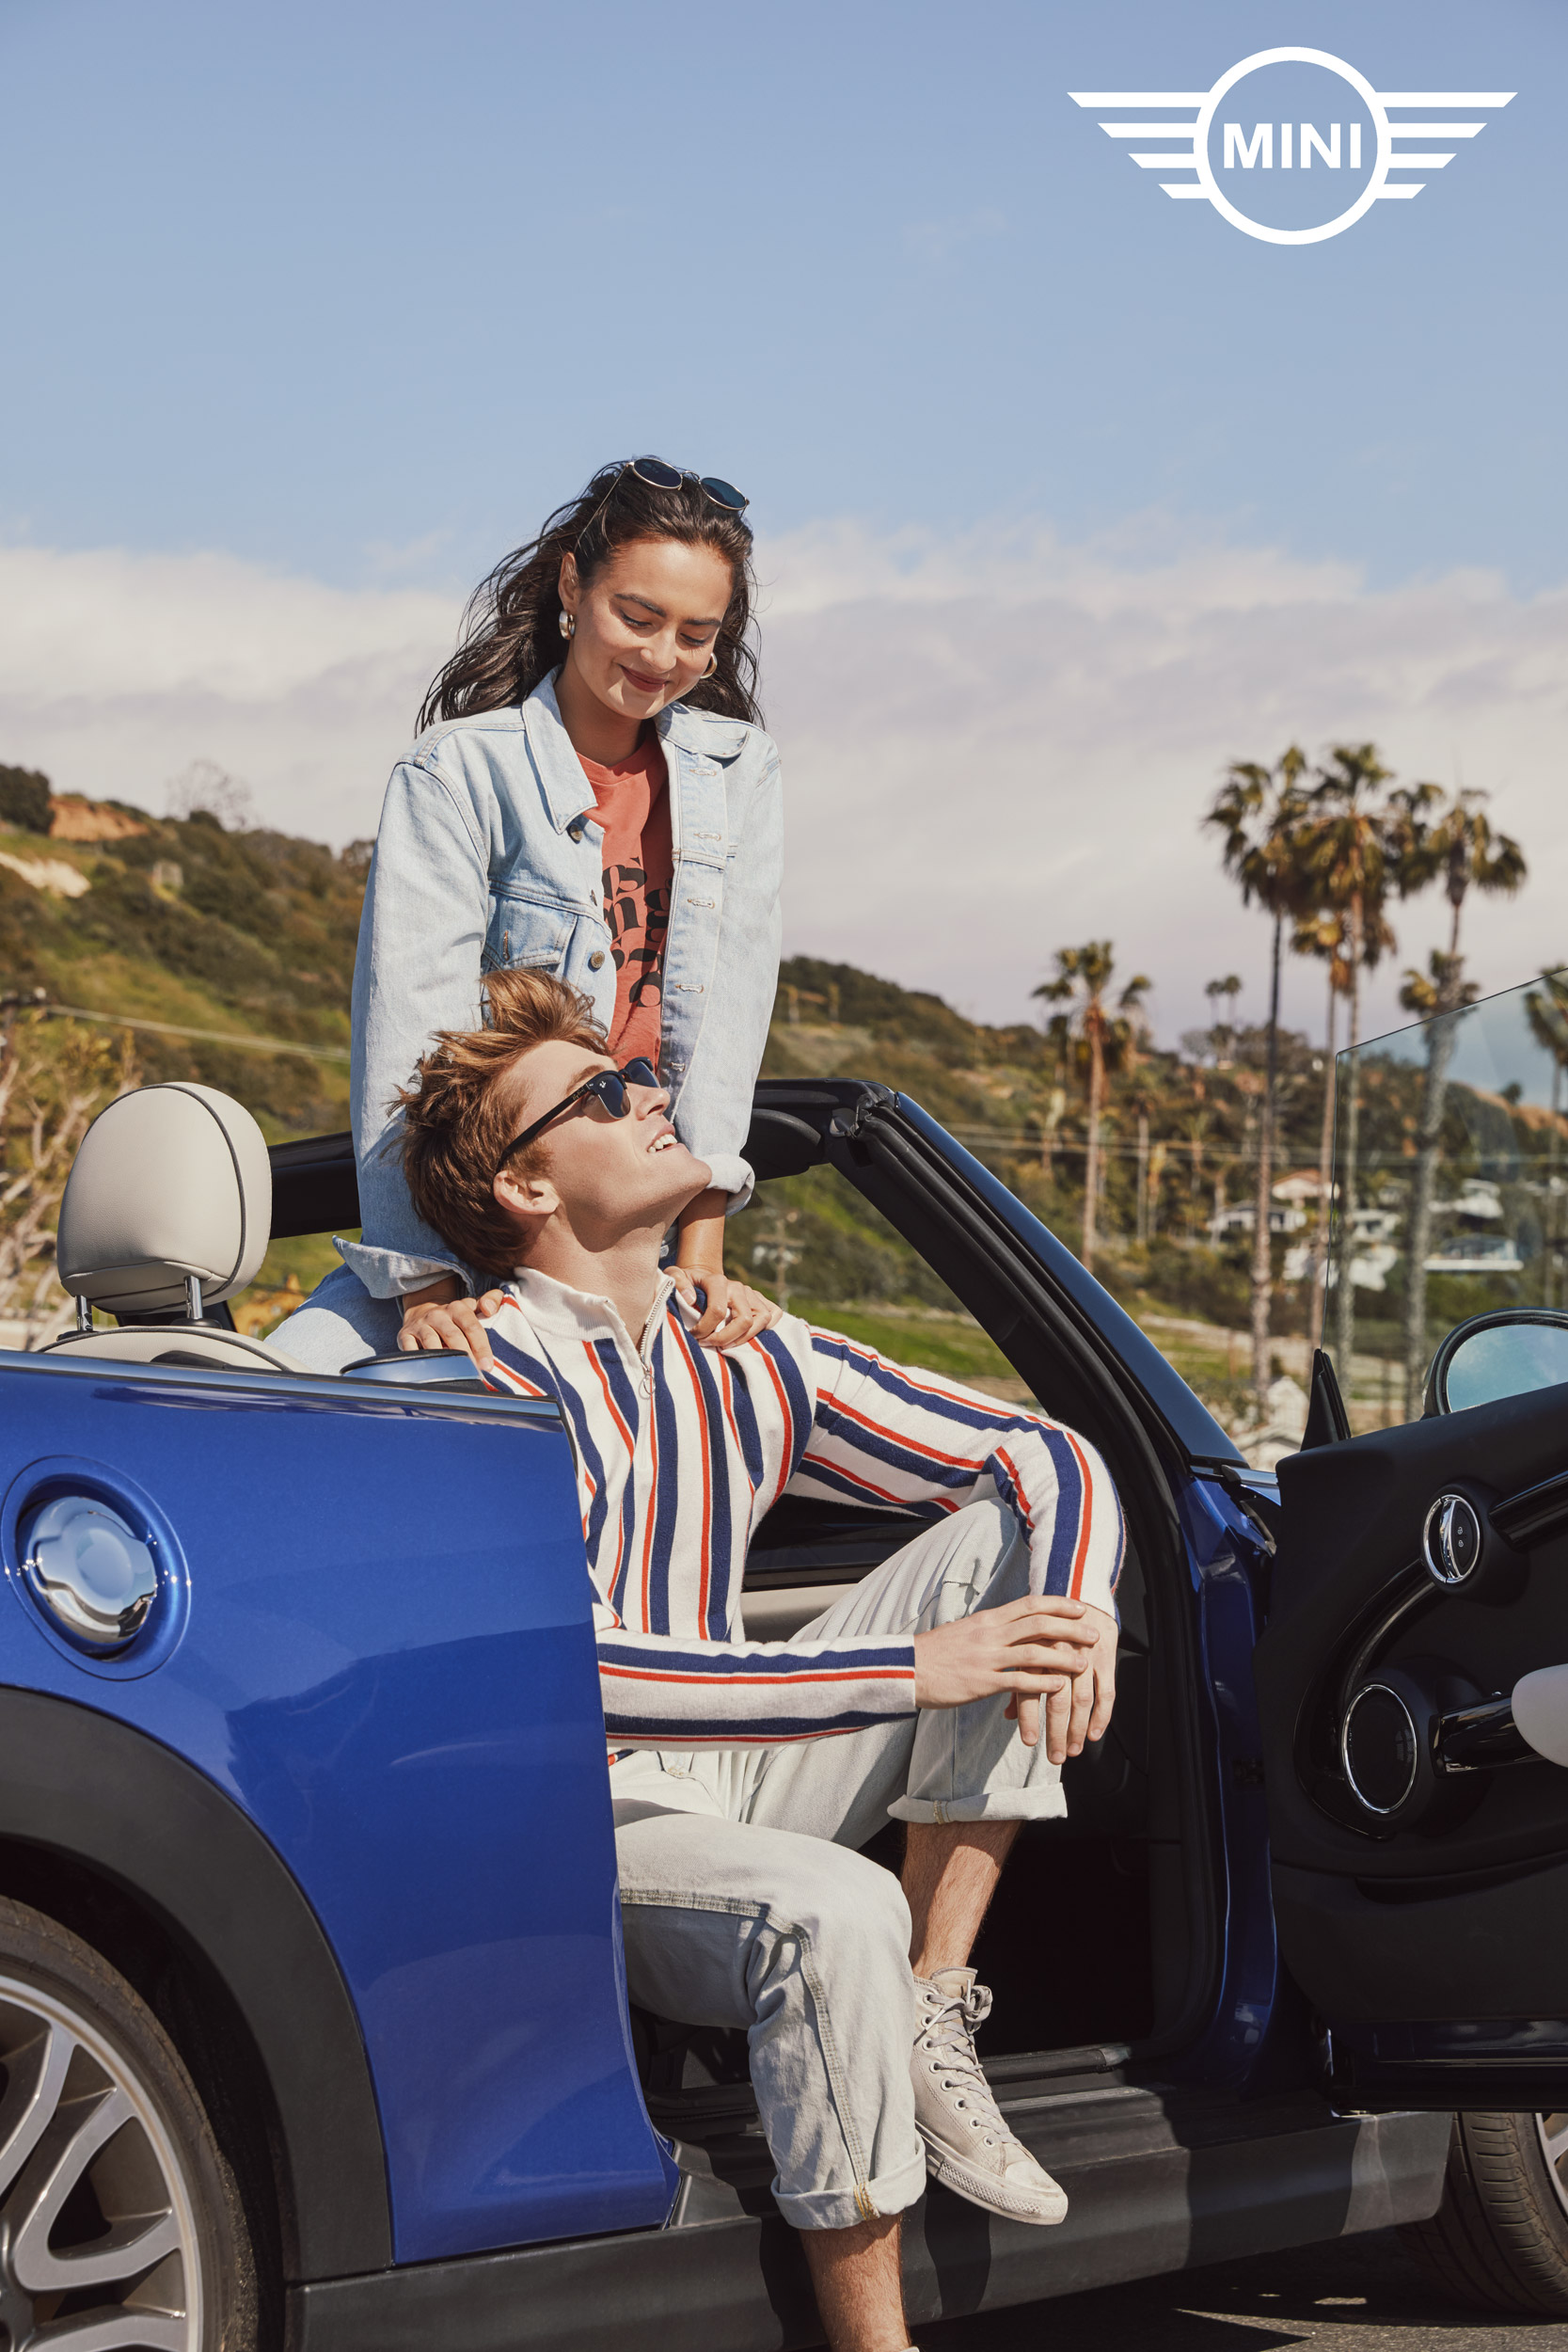 Millennial couple smiling in a convertible mini cooper - Kimberly Genevieve Los Angeles Lifestyle Advertising Photographer